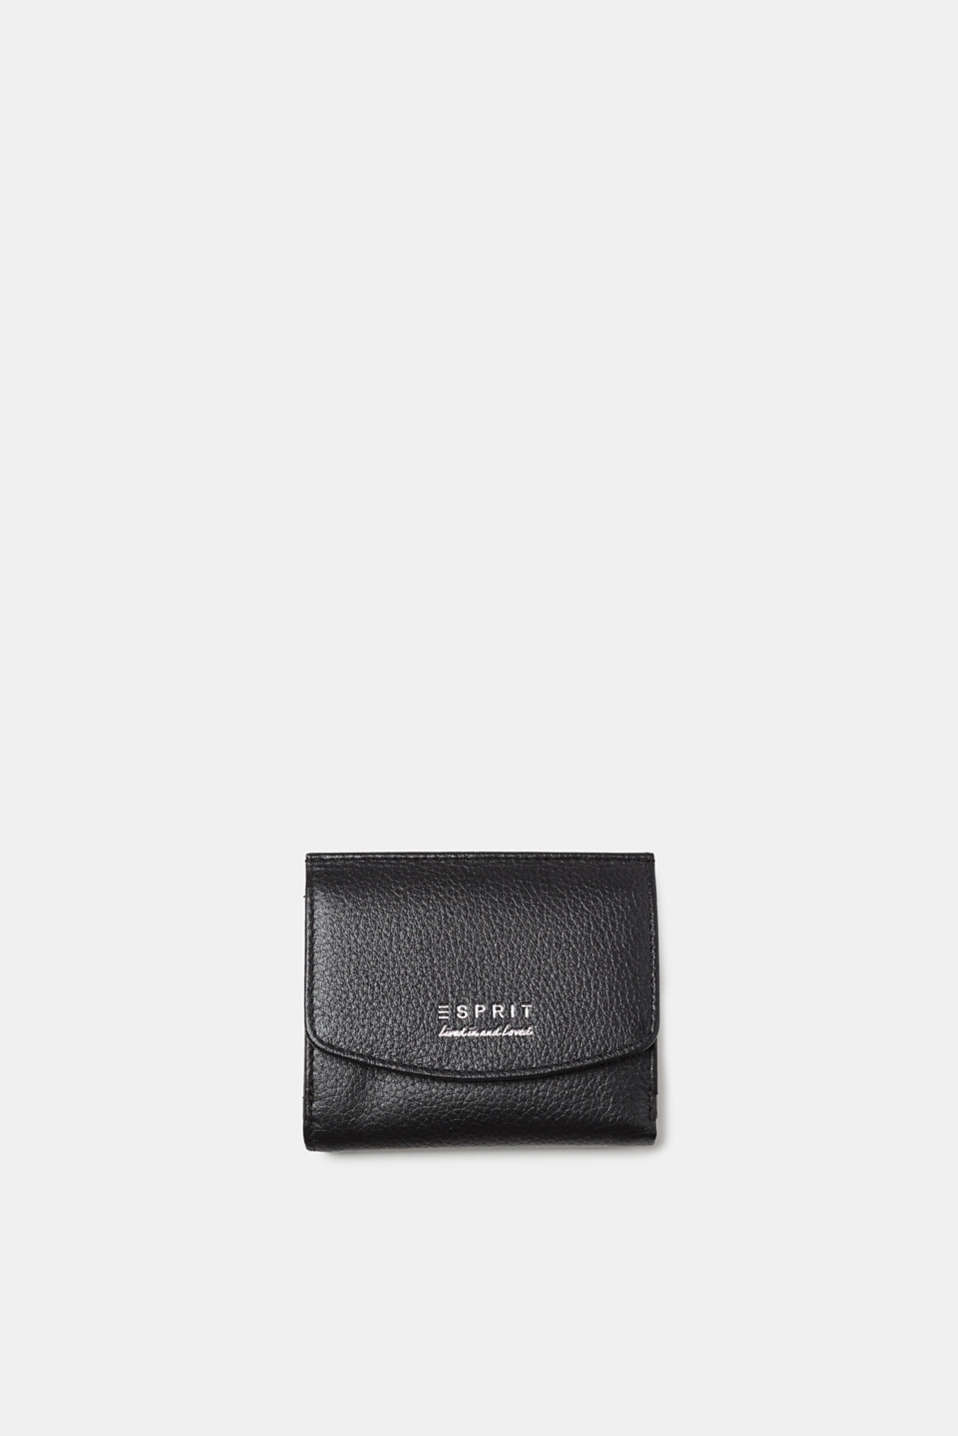 Esprit - Small leather wallet